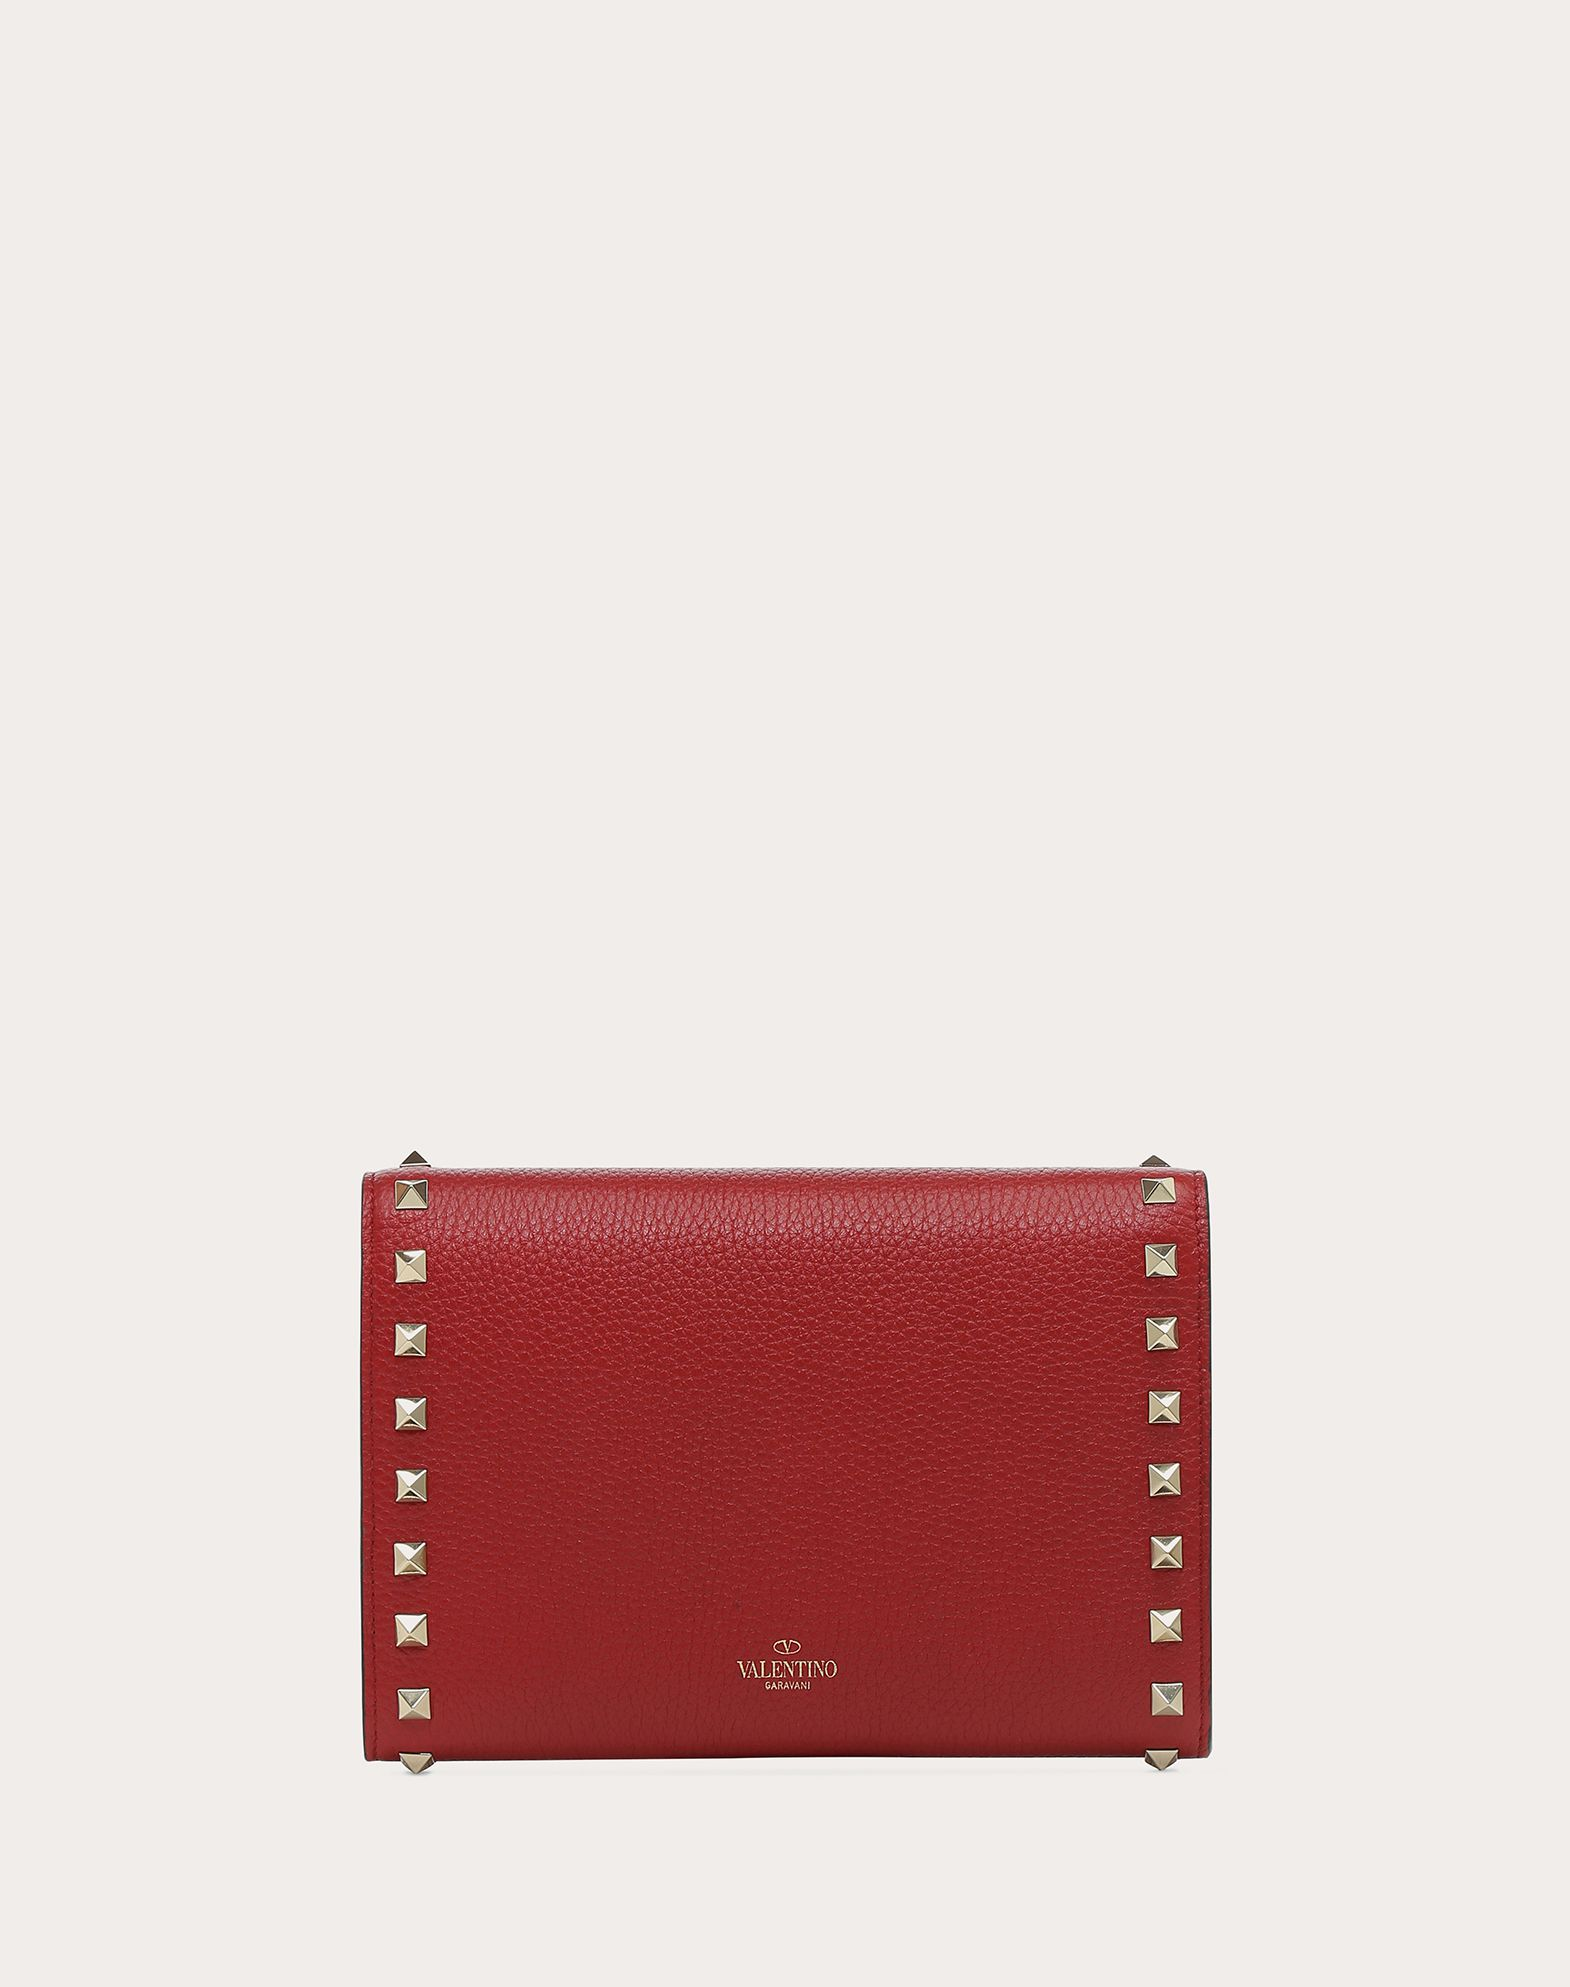 VALENTINO GARAVANI Rockstud Wallet with chain CHAIN WALLETS D d